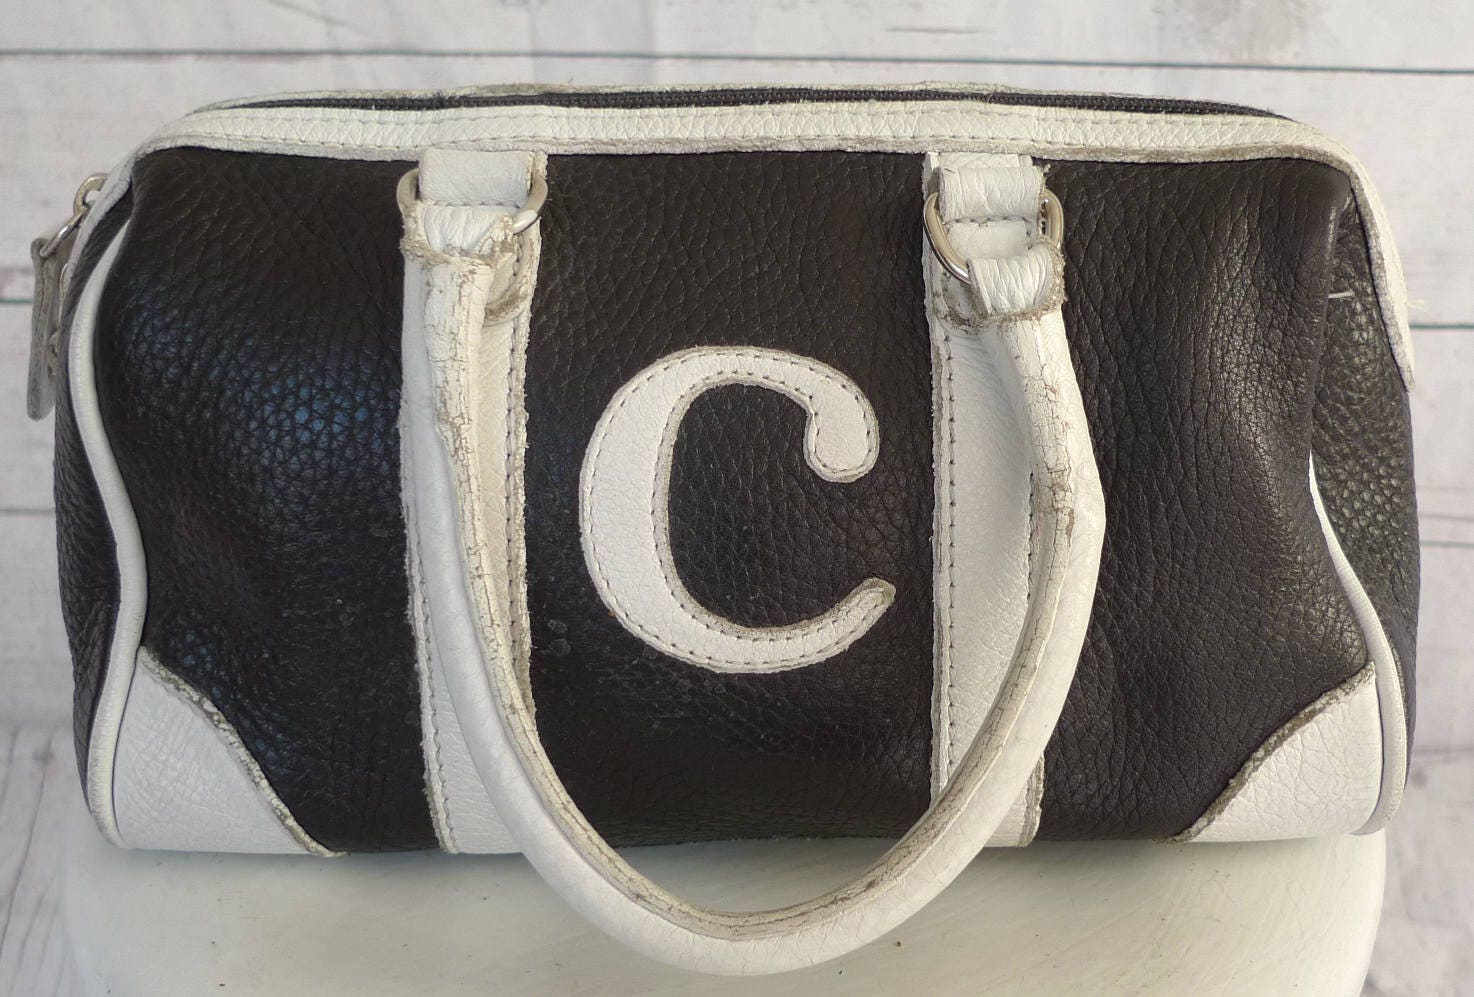 a39531b6f7 Vintage ROOTS LEATHER HANDBAG Retro Purse Mini Dr. Bag Initial